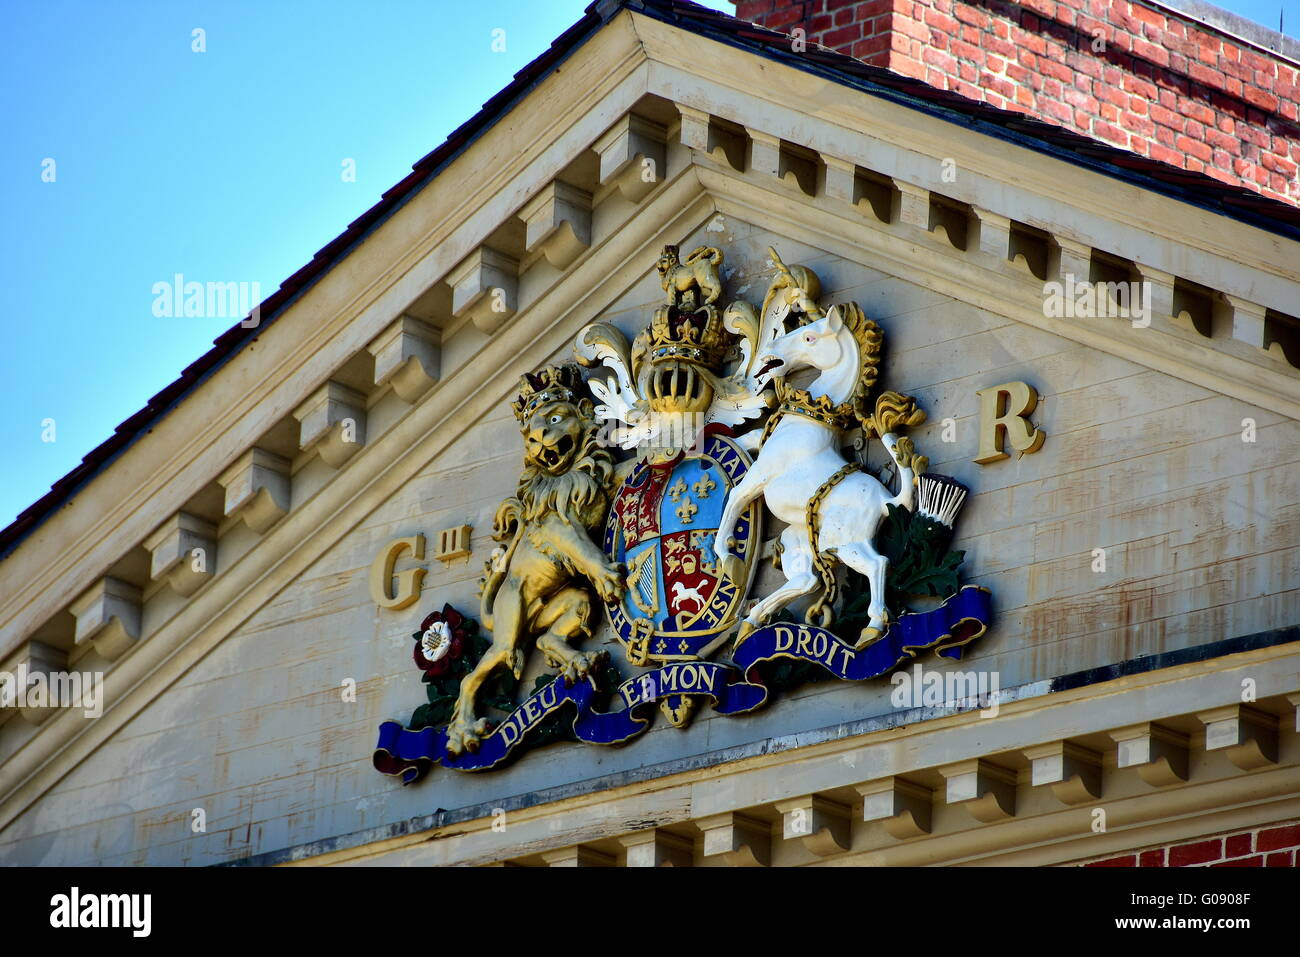 New Bern, North Carolina:  Coat of Arms of England's King George III on the center pediment of 1770 Tryon Palace - Stock Image